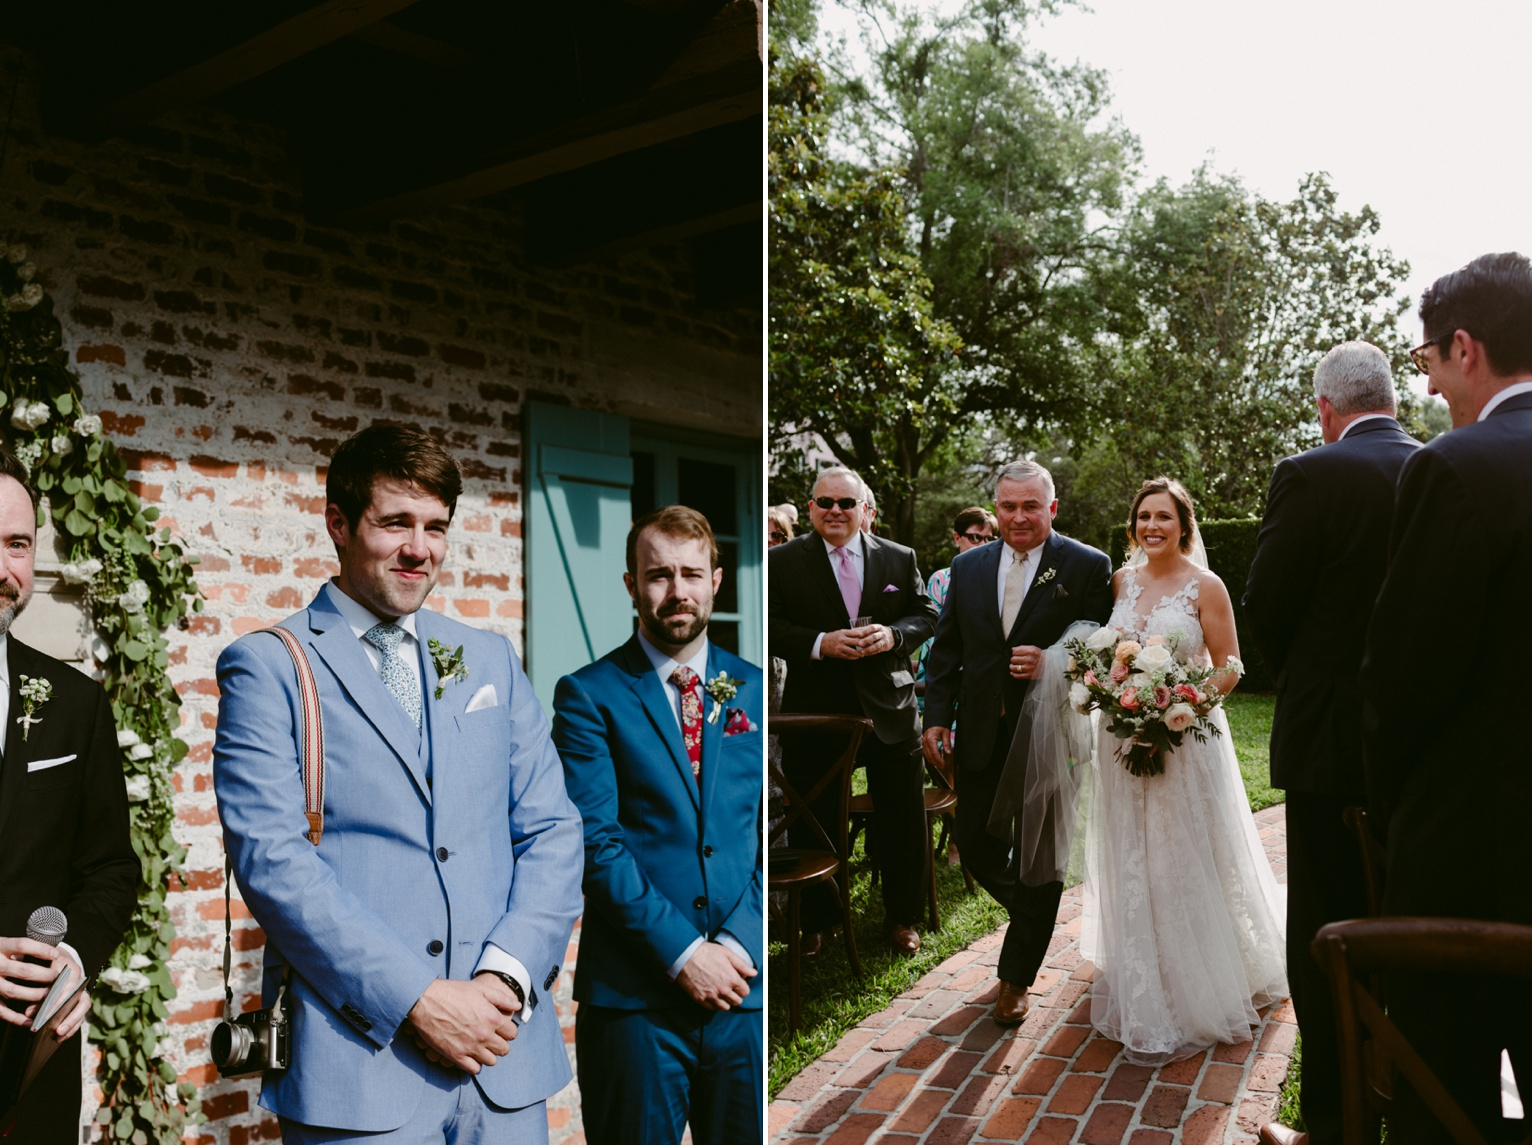 Dreamtownco.com_blog_Nick&Lindsay_Wedding_0084.jpg